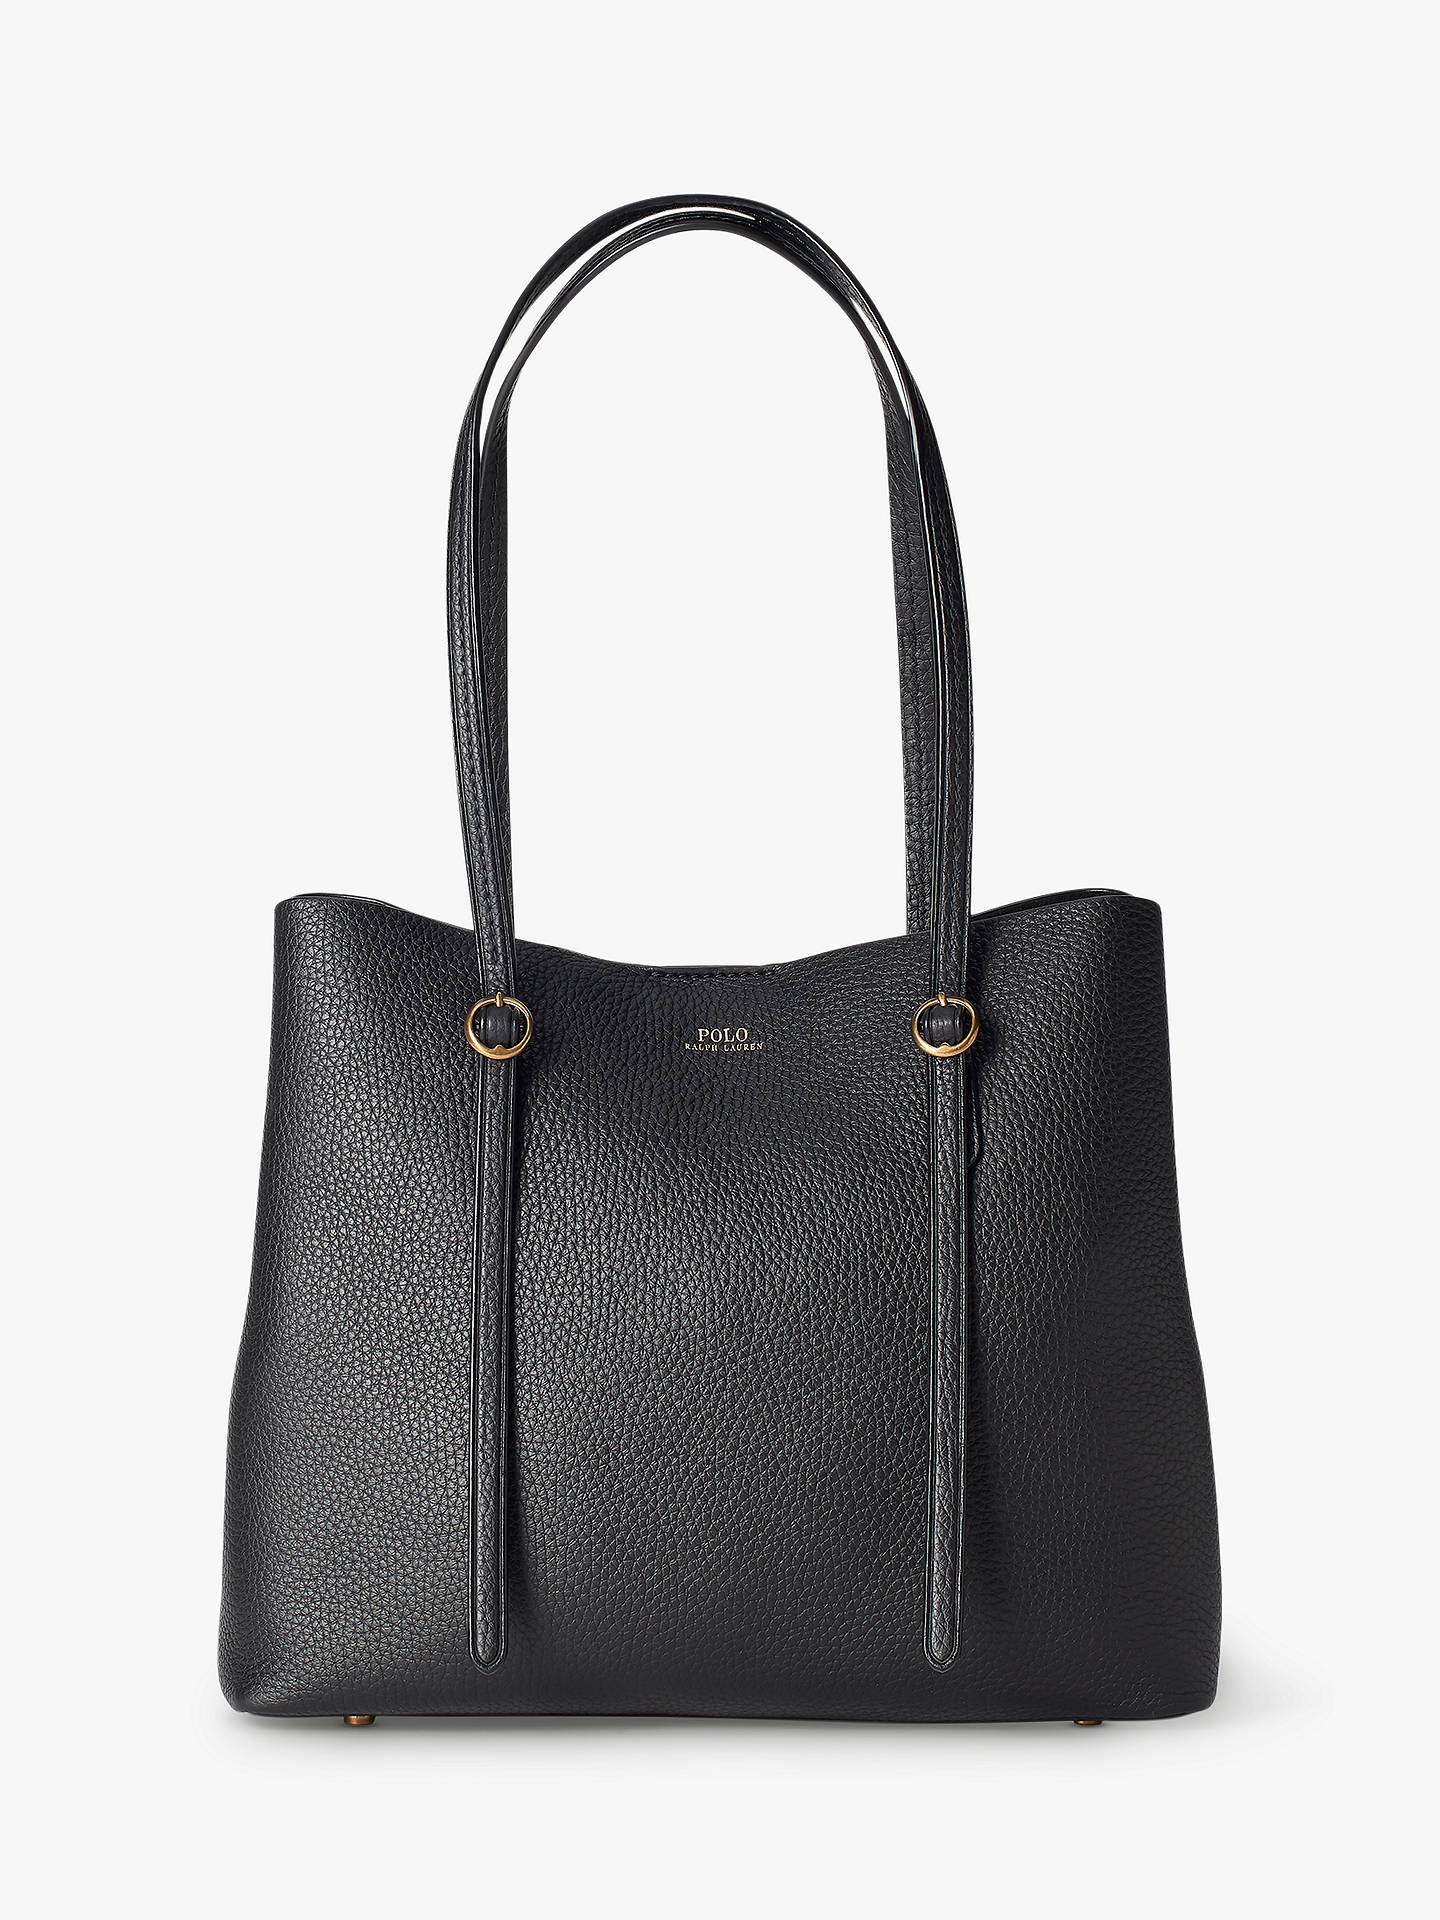 290ffb40ca Buy Polo Ralph Lauren Lennox Leather Tote Bag Online at johnlewis.com ...